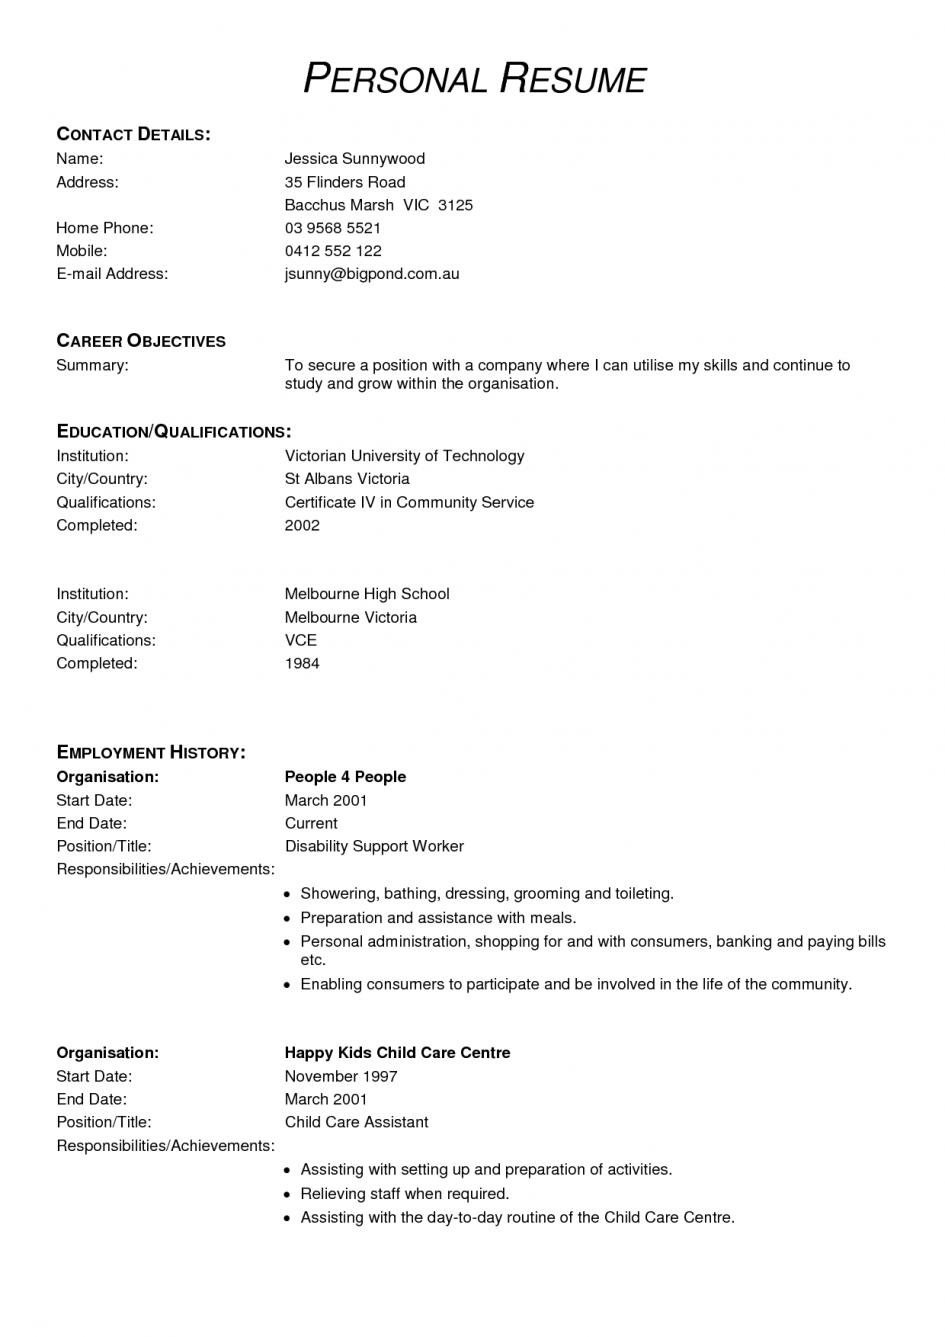 Pin By Carrie Skouby On Resume Help Medical Receptionist